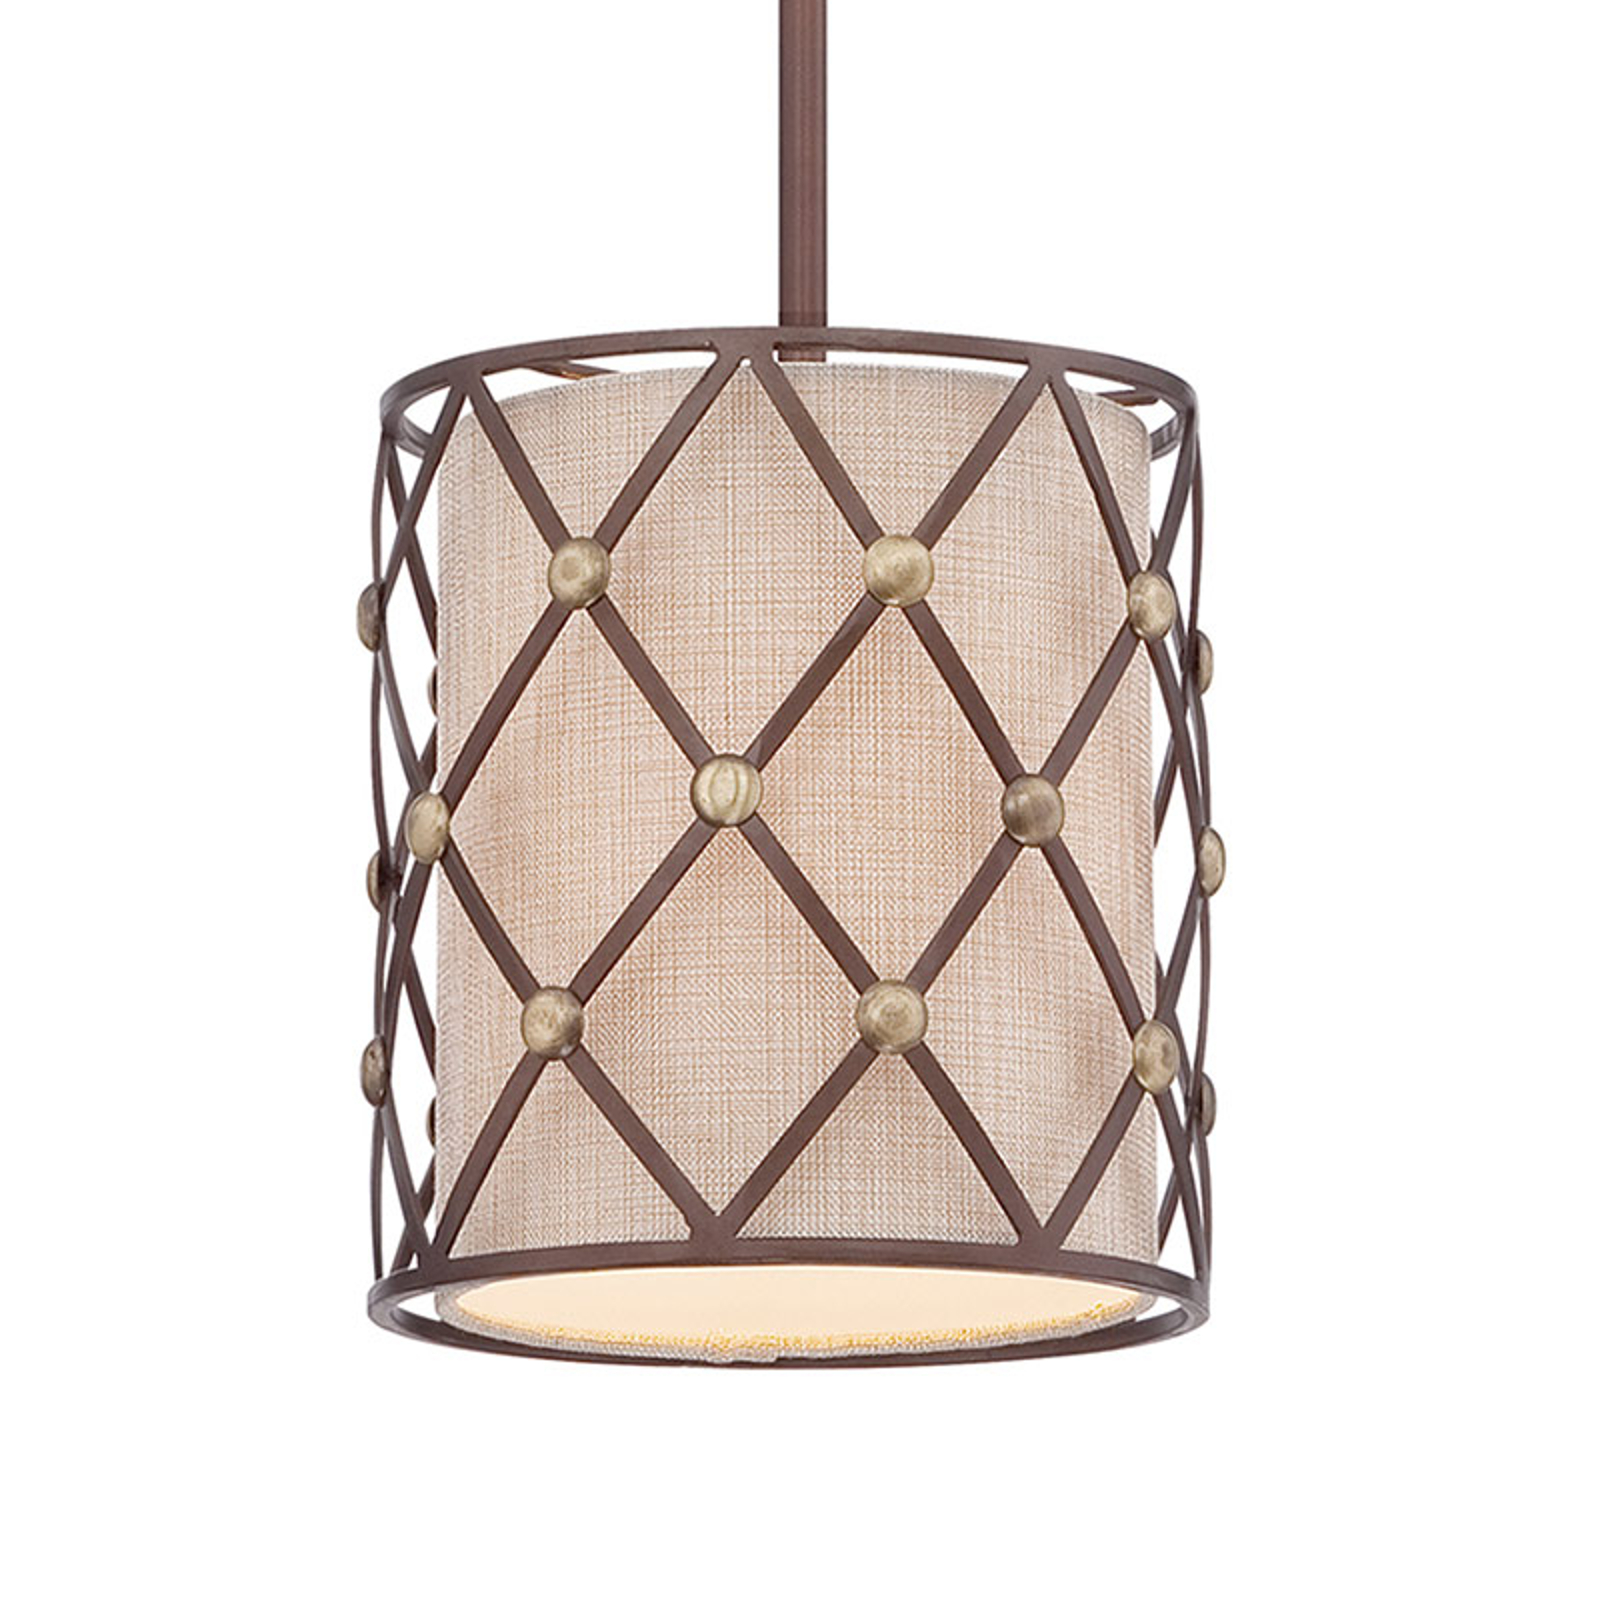 Lampa wisząca Brown Lattice Ø 20,3 cm